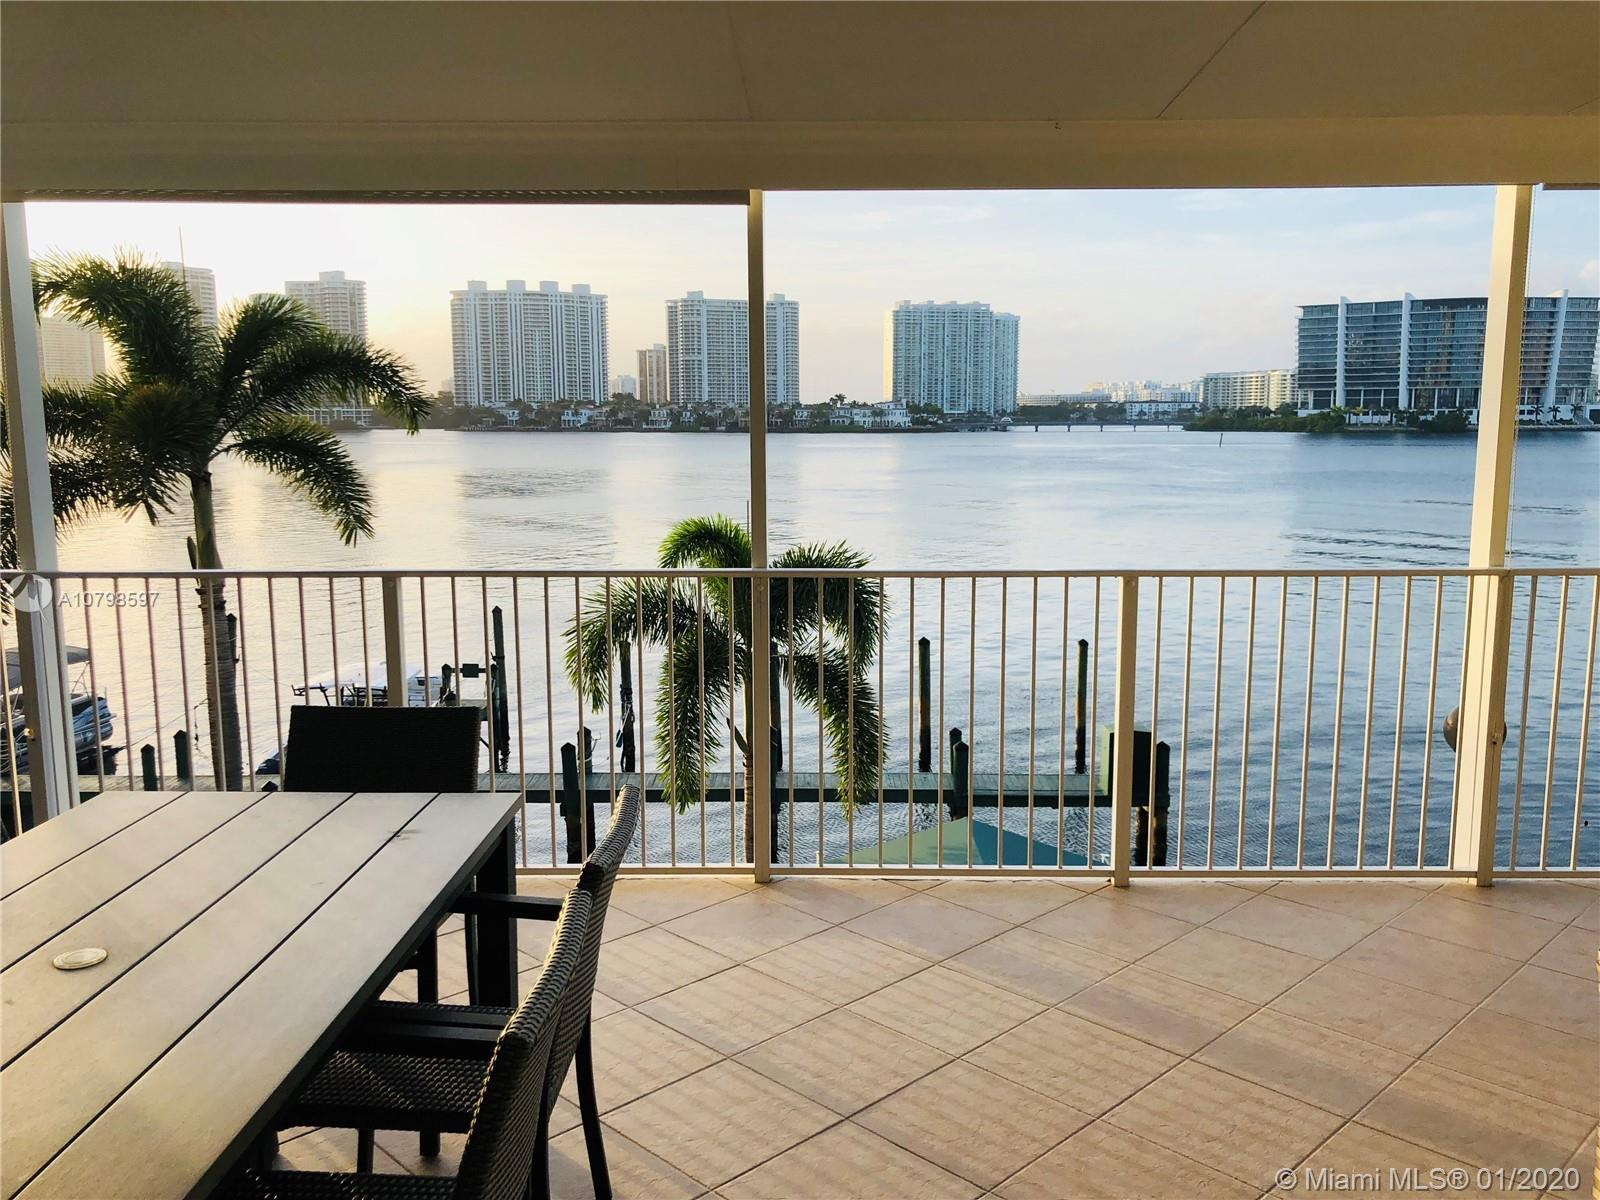 Own a Slice of Paradise in Prestigious Sunny Isles Beach Florida! This unit has it all! This unique